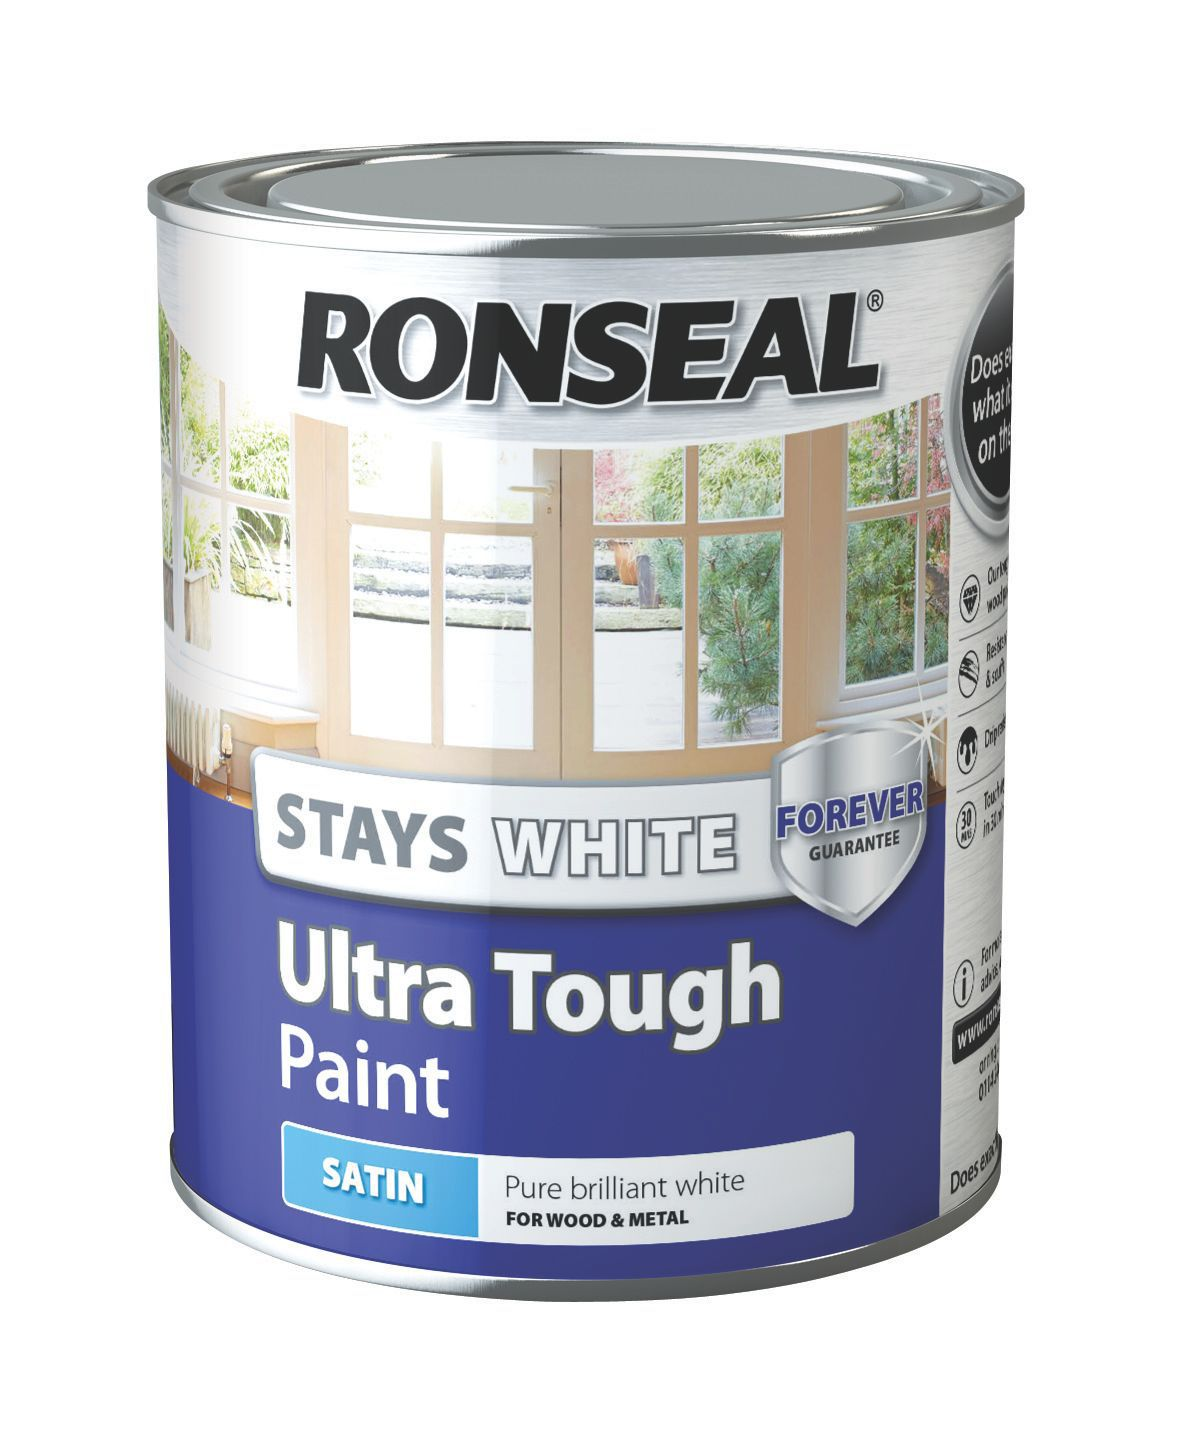 Ronseal Interior Exterior Pure Brilliant White Satin Wood Metal Paint 750ml Departments